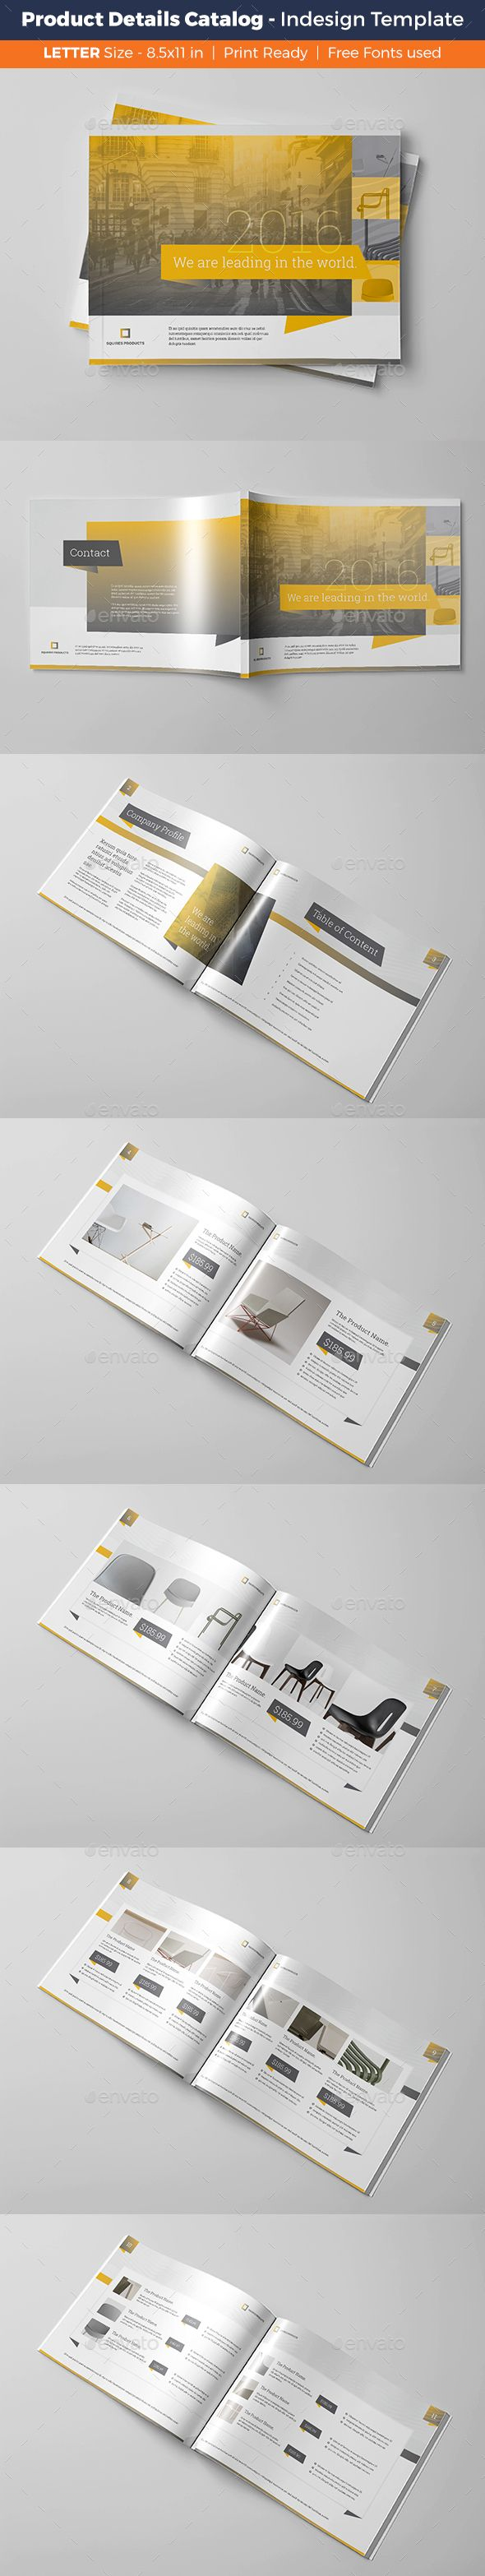 Product Details Catalog Template InDesign INDD. Download here: http ...